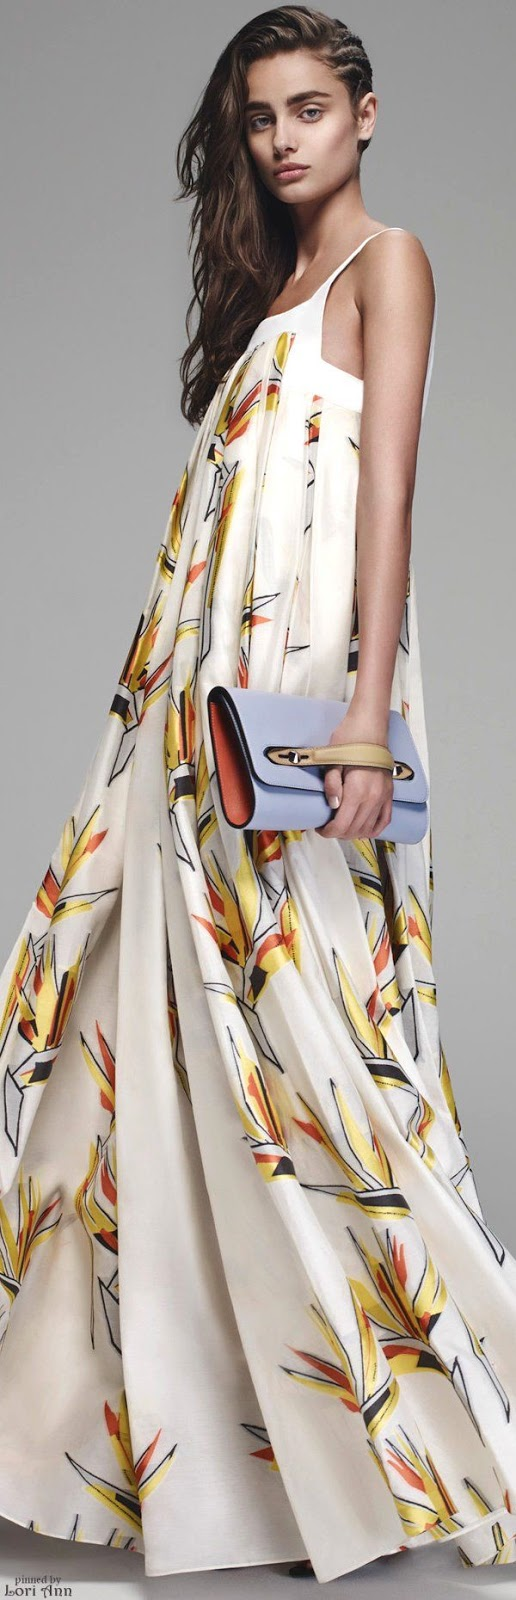 Desejo do dia - vestido Dress Fendi Resort 2016